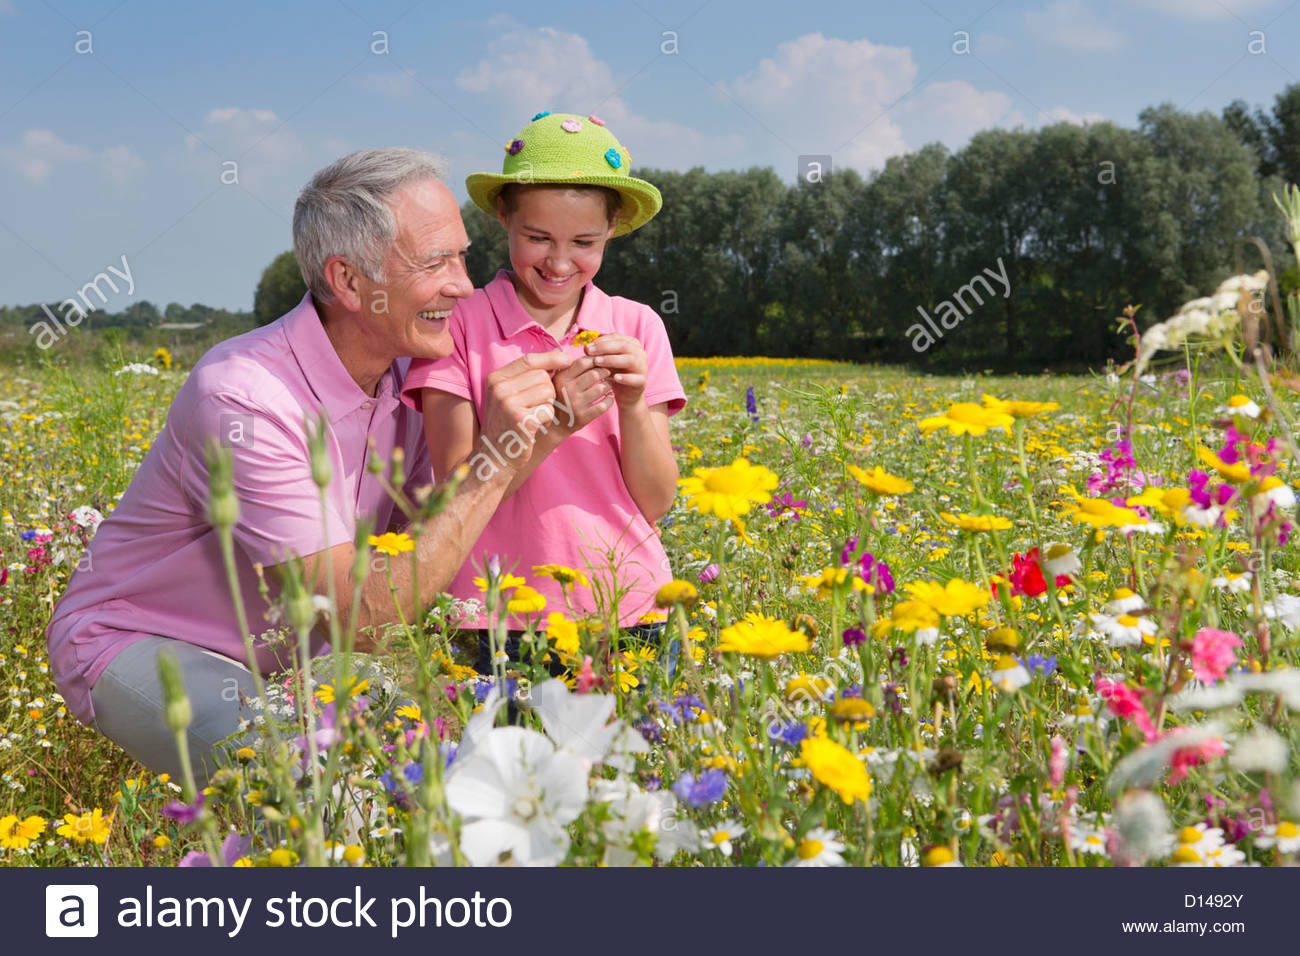 Smiling grandfather and granddaughter among wildflowers in meadow - Stock Image